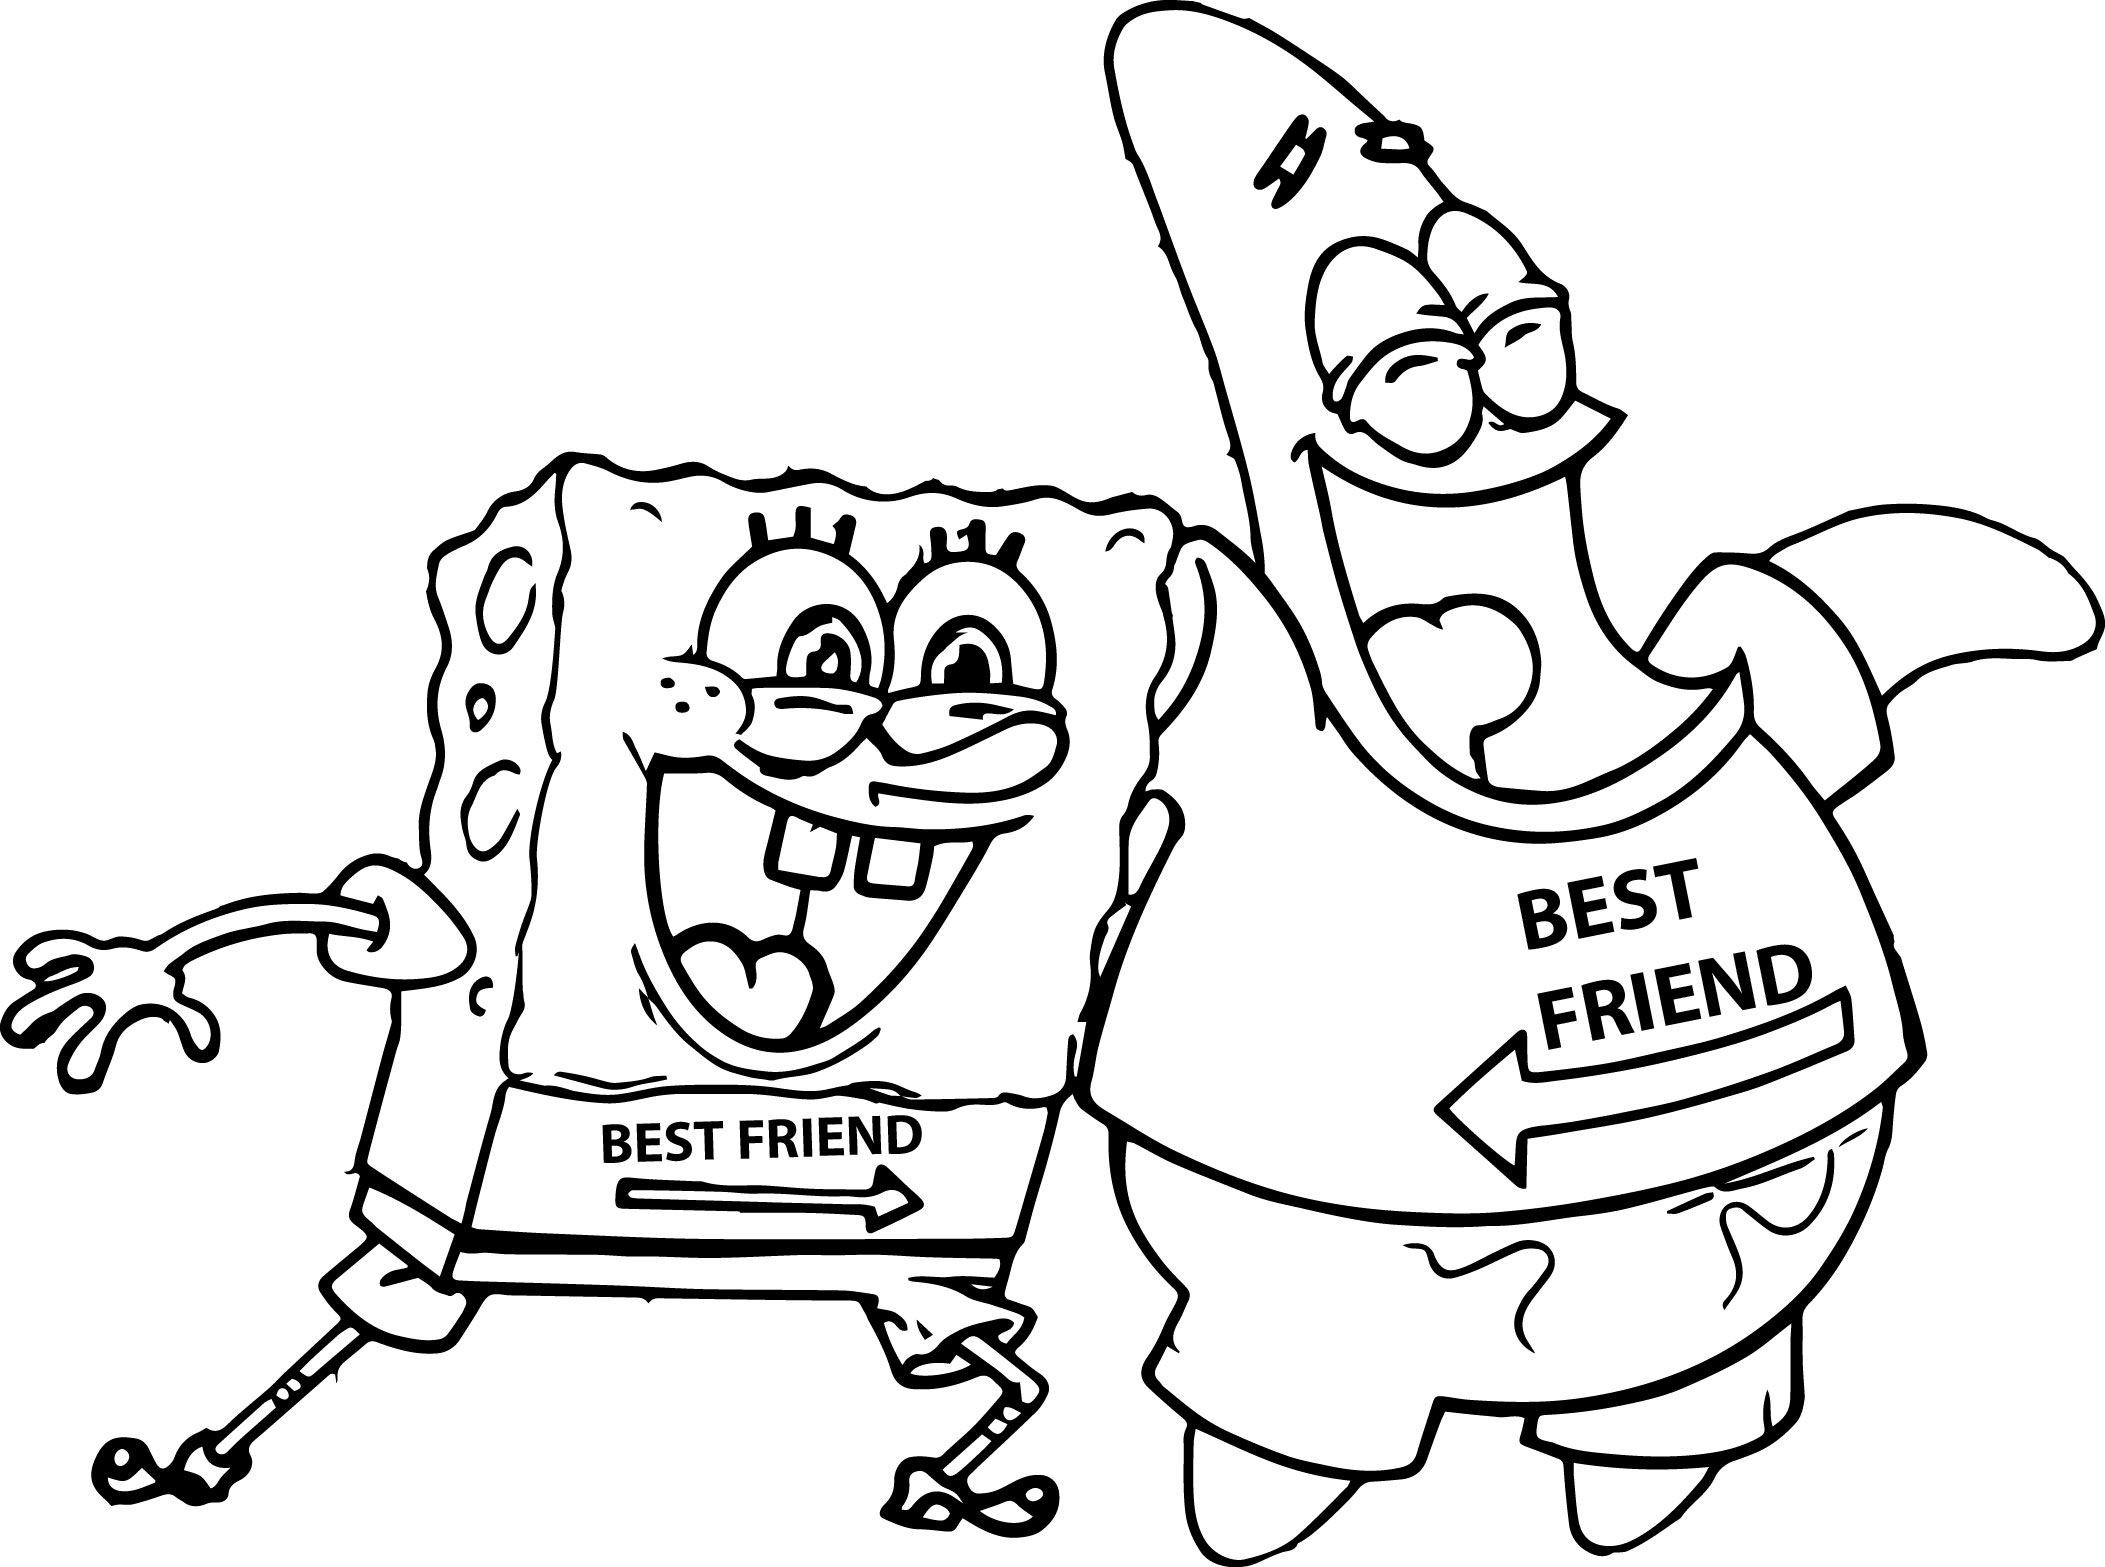 Spongebob Coloring Sheet Pdf From The Thousand Images On Line Concerning Spongebob Coloring She Spongebob Drawings Drawings Of Friends Cartoon Coloring Pages